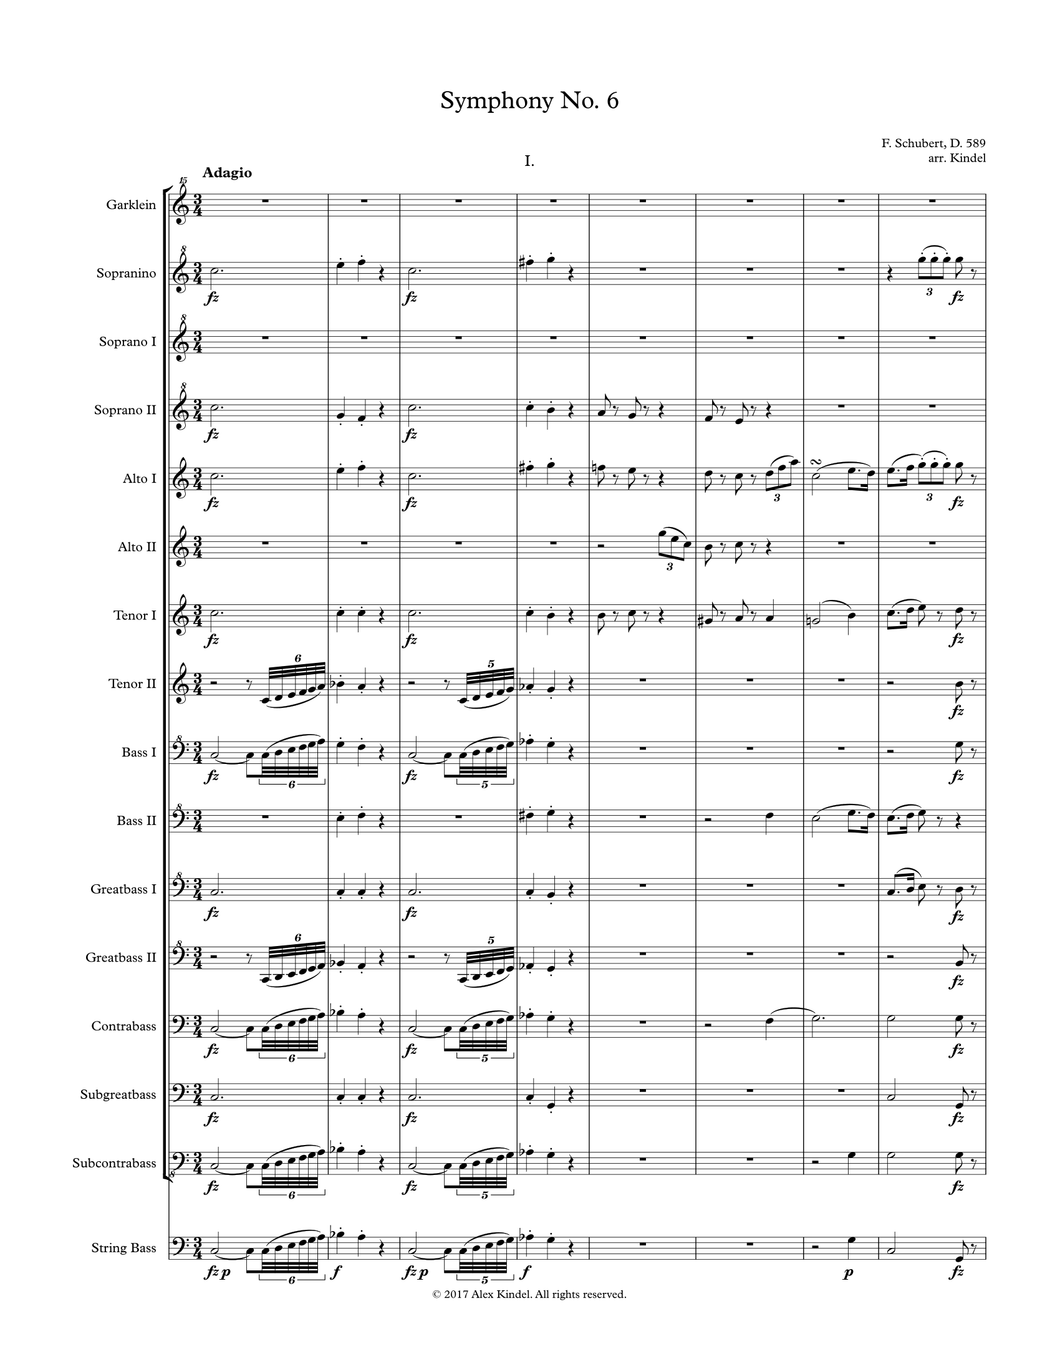 Schubert, F.: Symphony No. 6, D. 589, for recorders